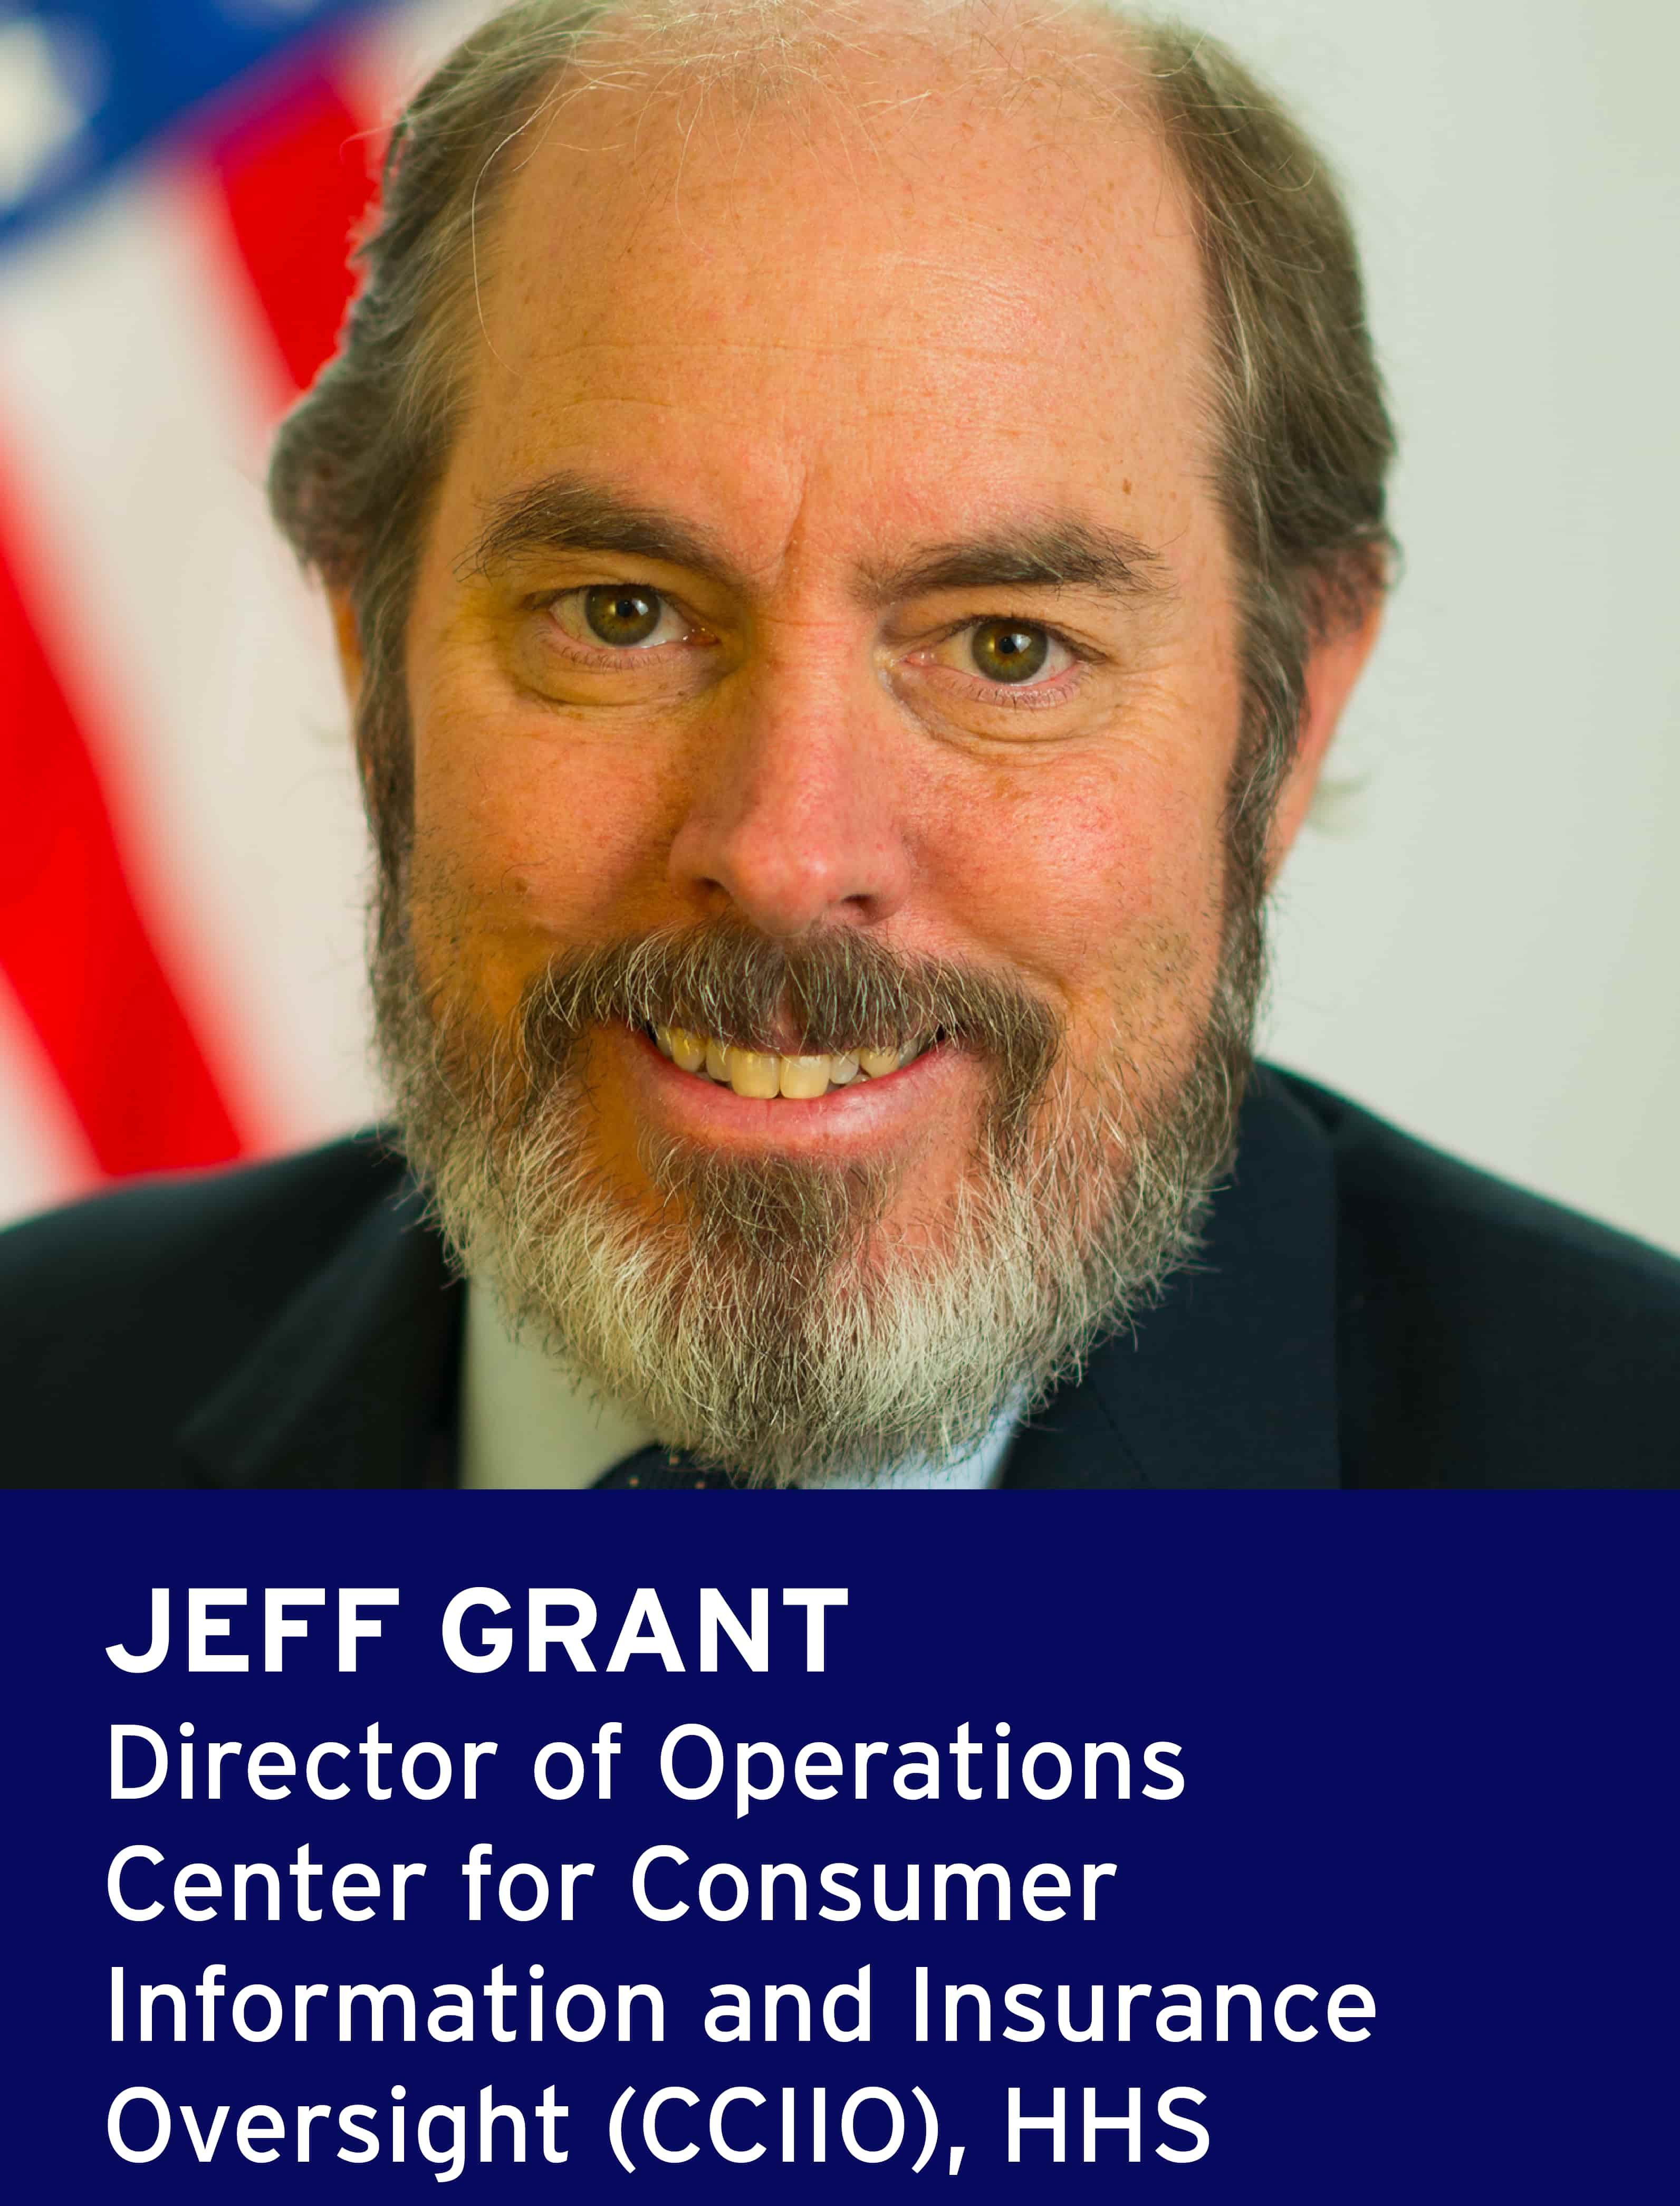 Jeff Grant, Director of Operations, Center for Consumer Information and Insurance Oversight, HHS